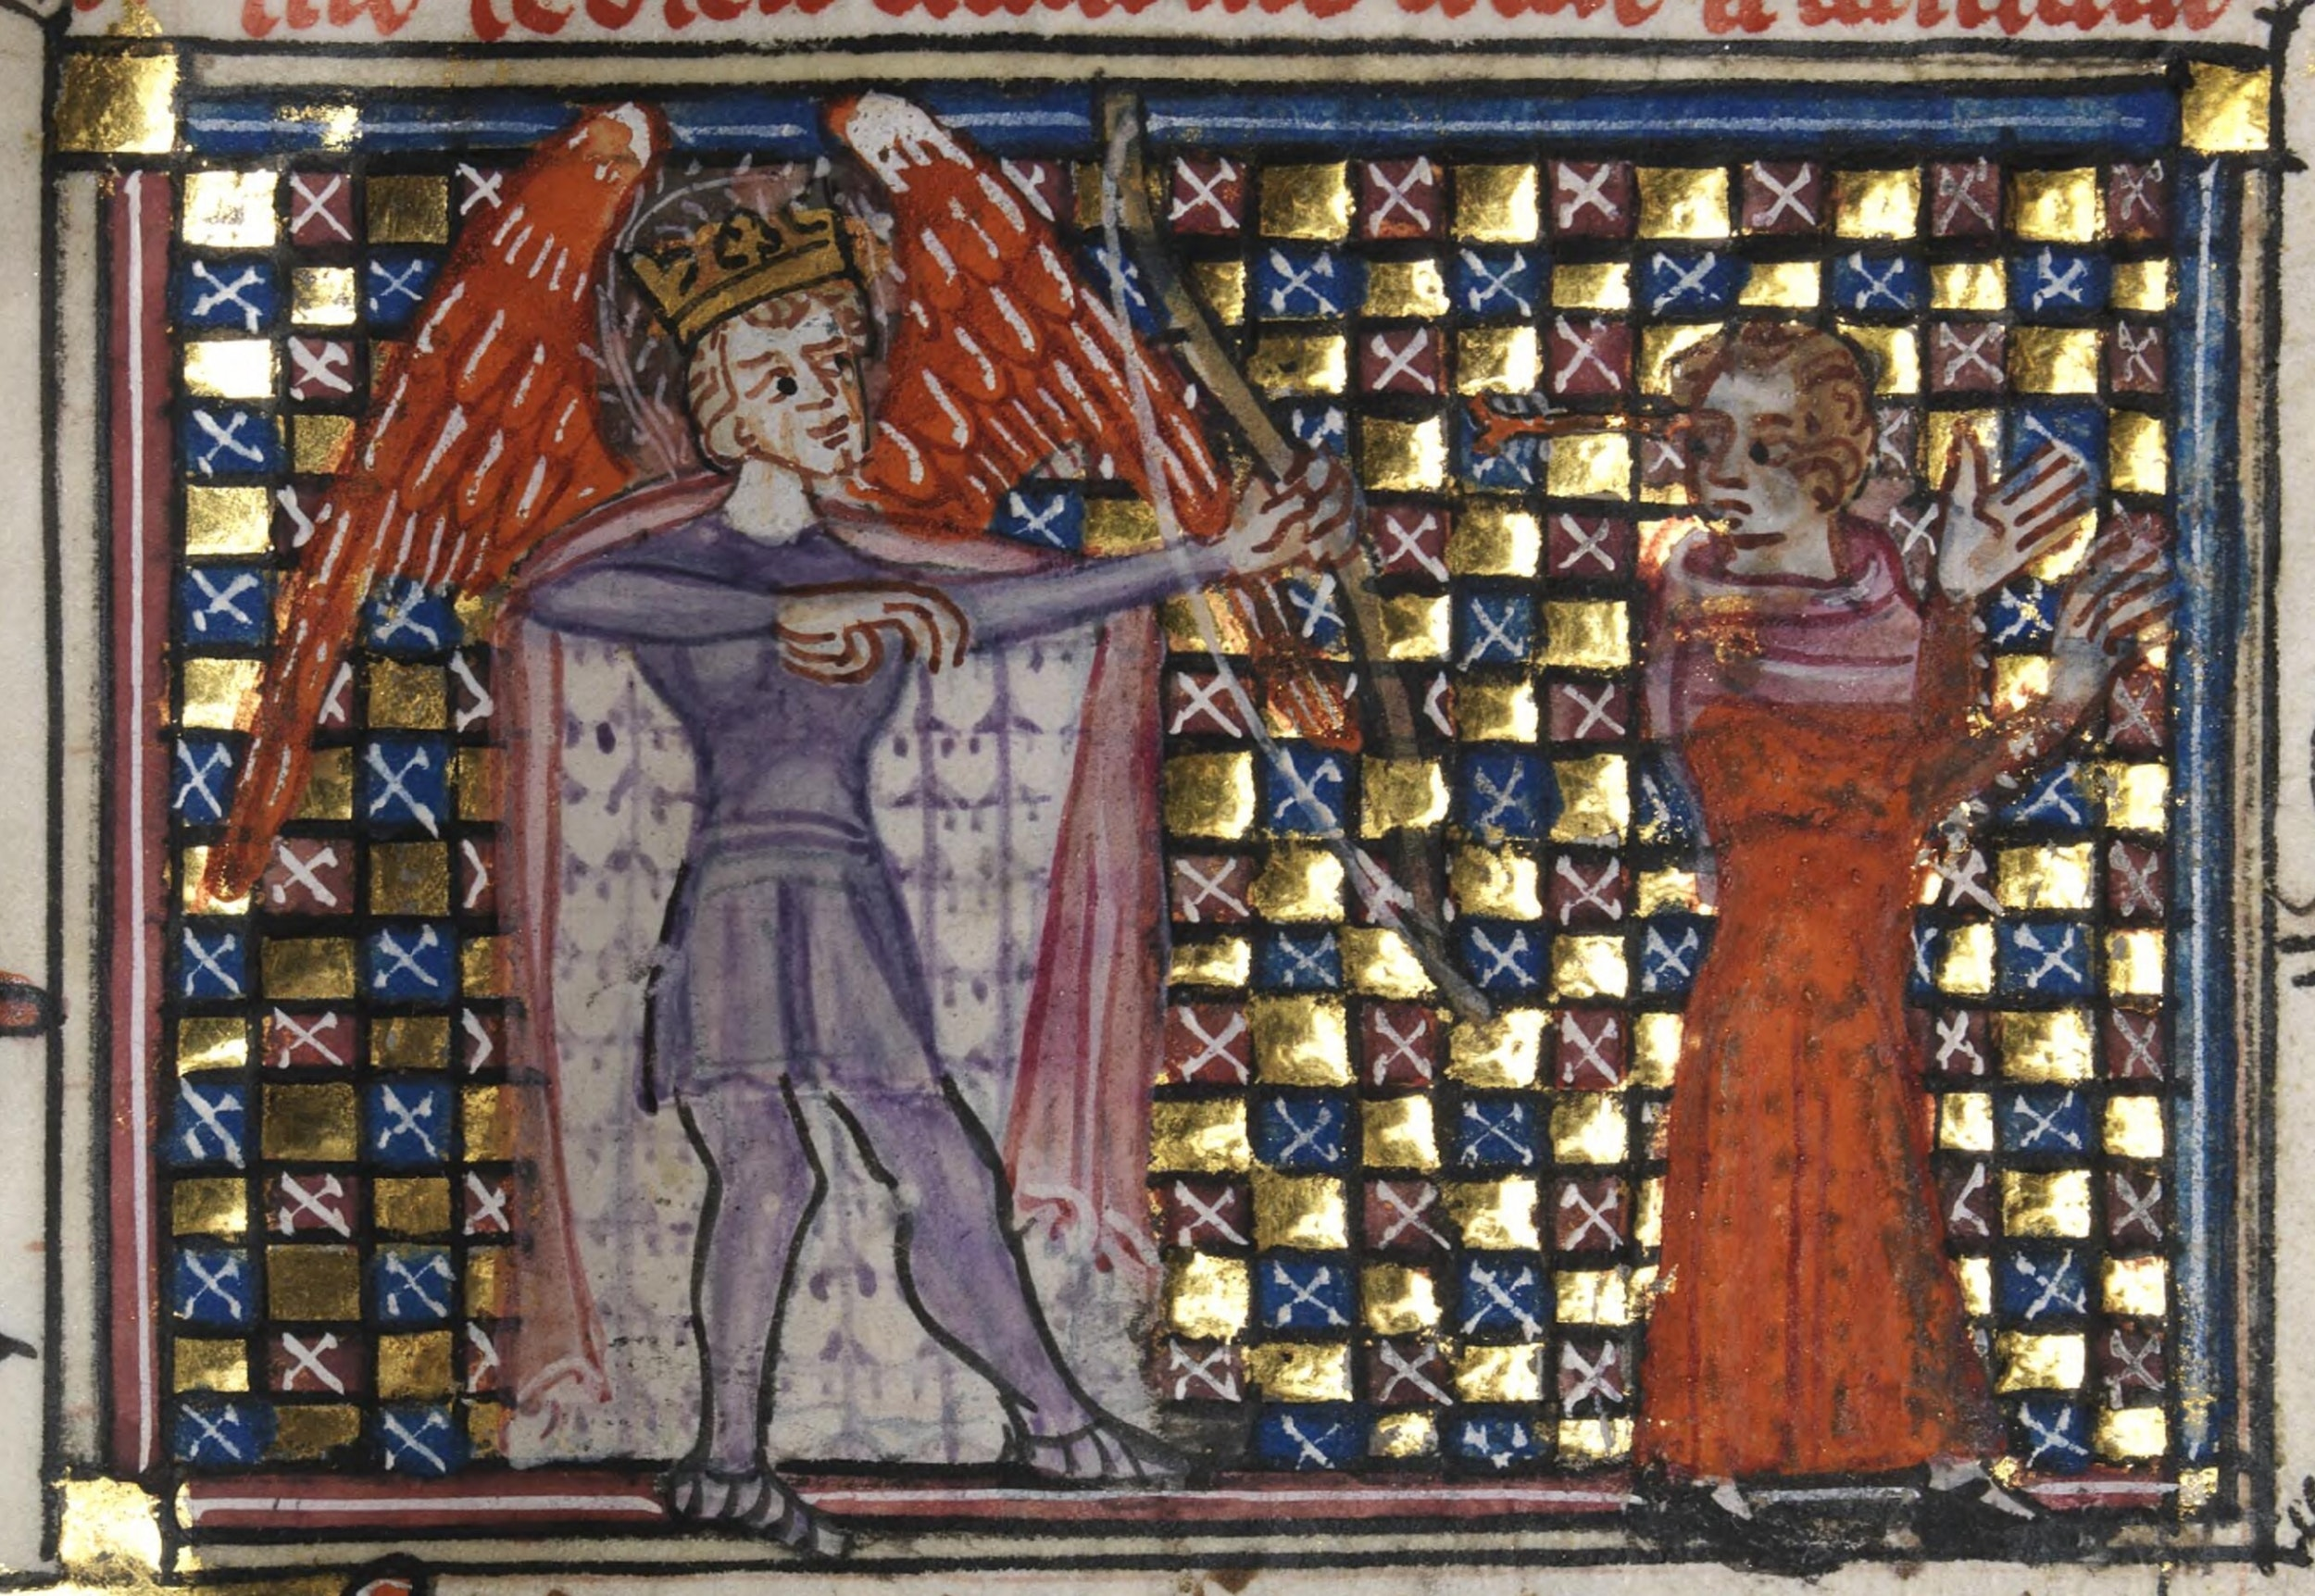 10 facts about how sex was in the Middle Ages